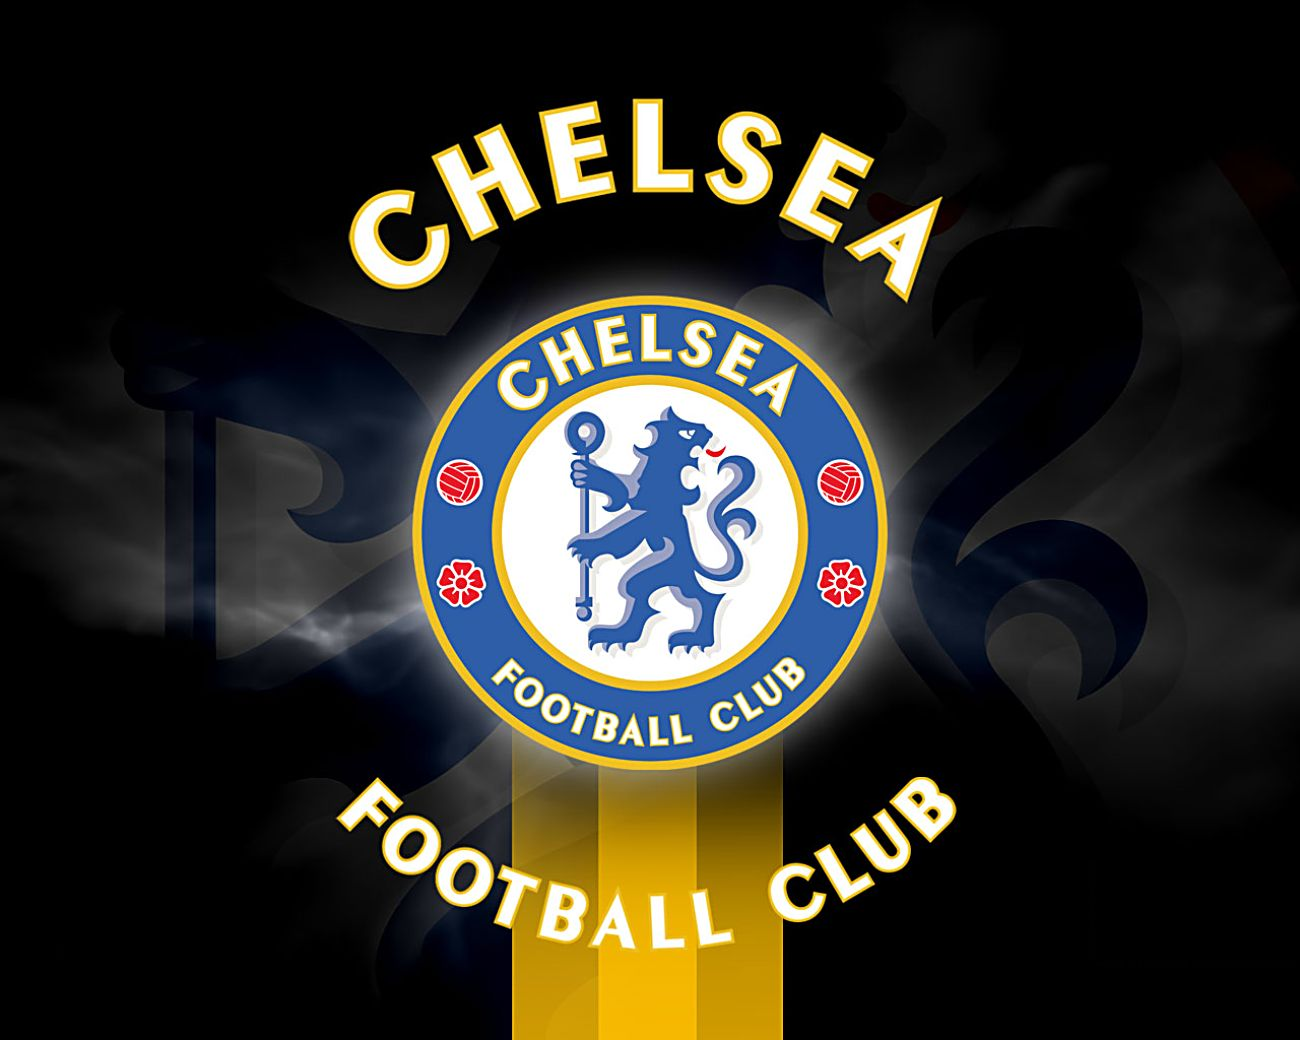 Football game the collection of chelsea logo chelsea logo collection on black background voltagebd Gallery